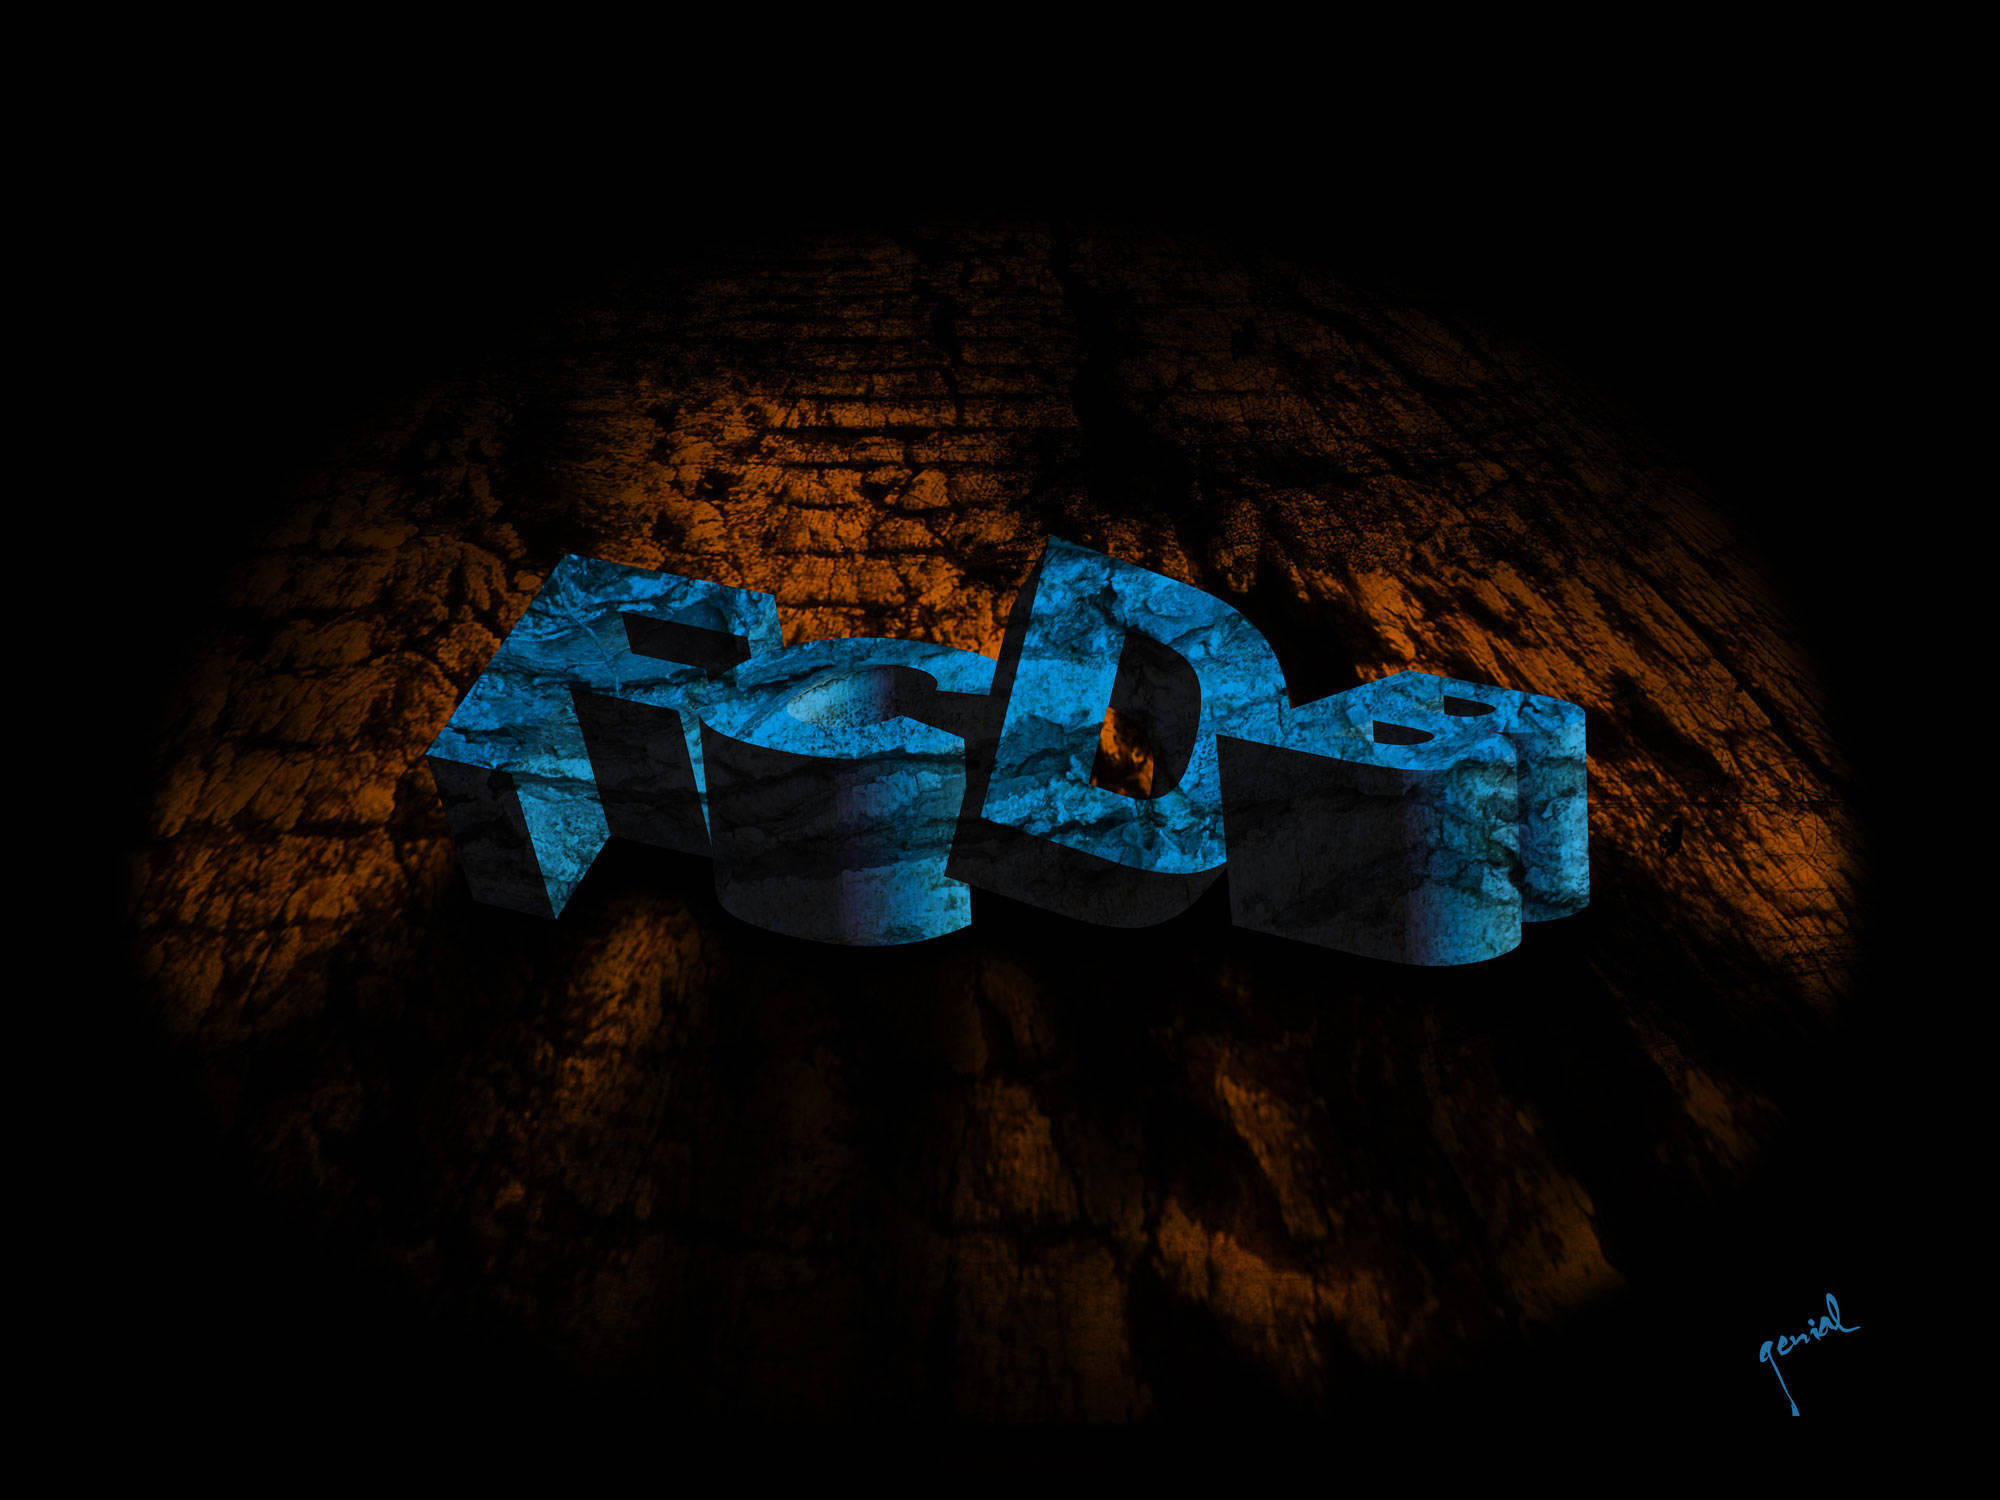 Photoshop 3D Text Image Galery